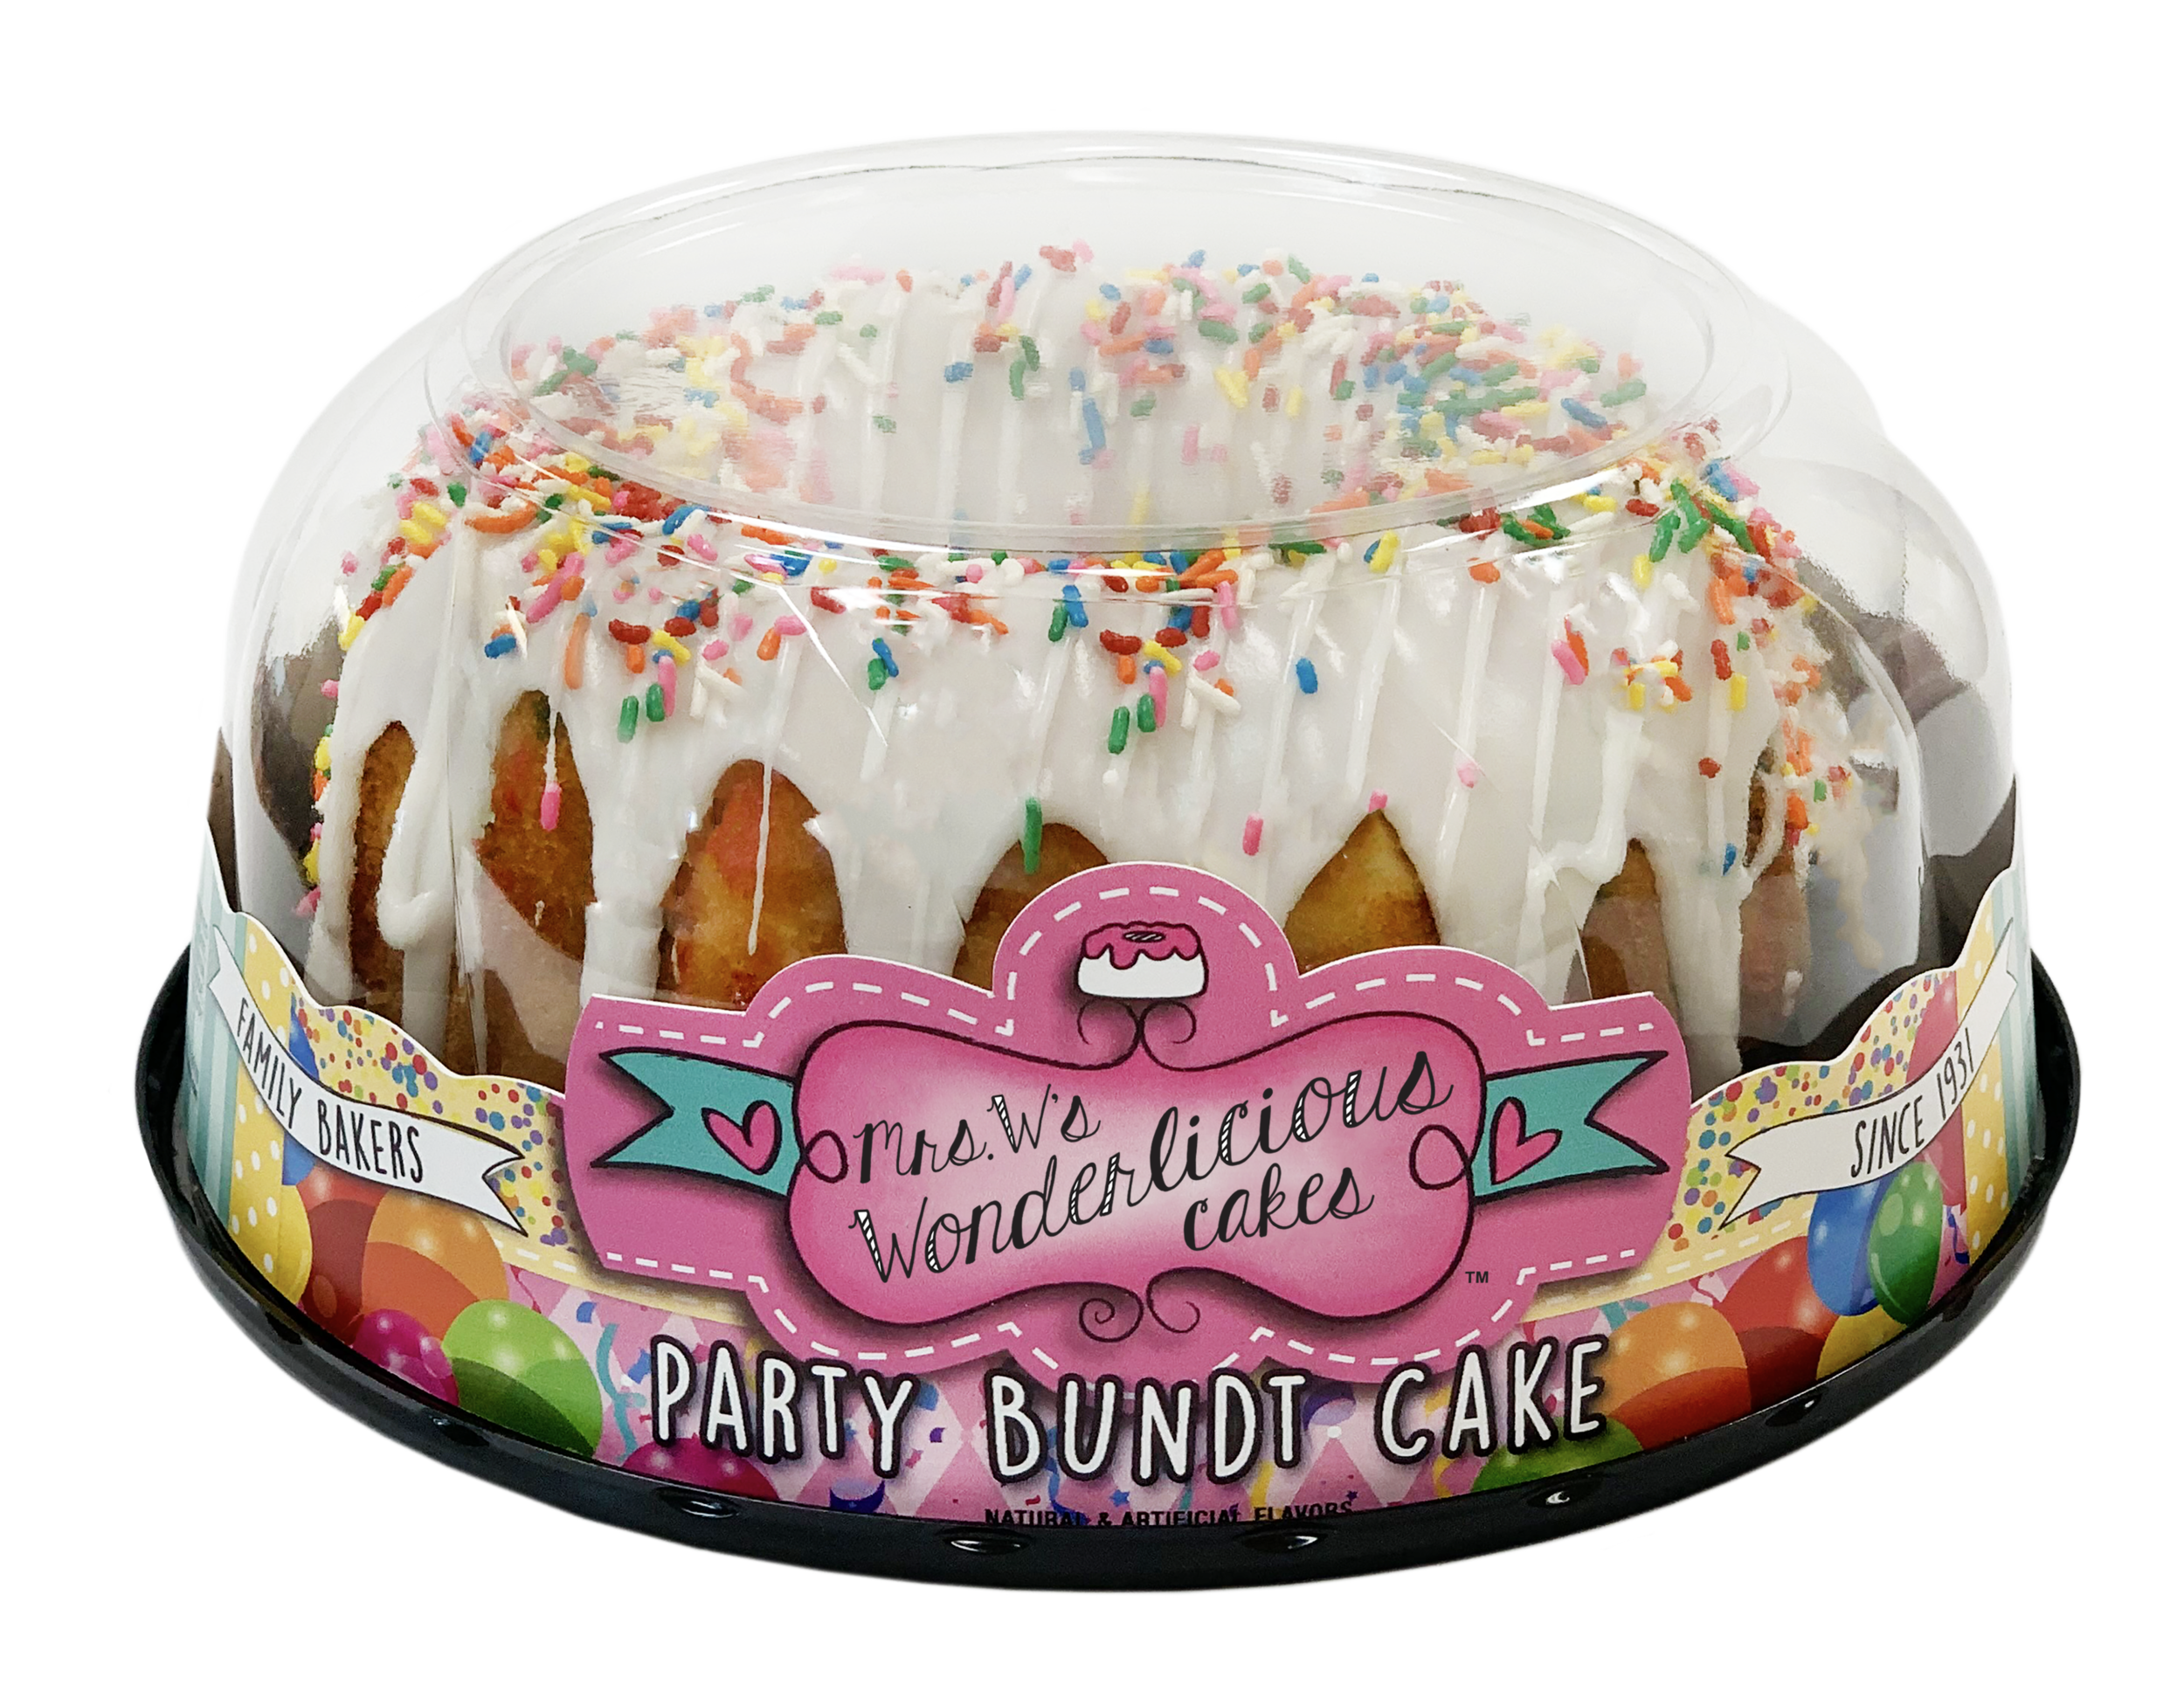 MWWC Party Bundt Cake.png